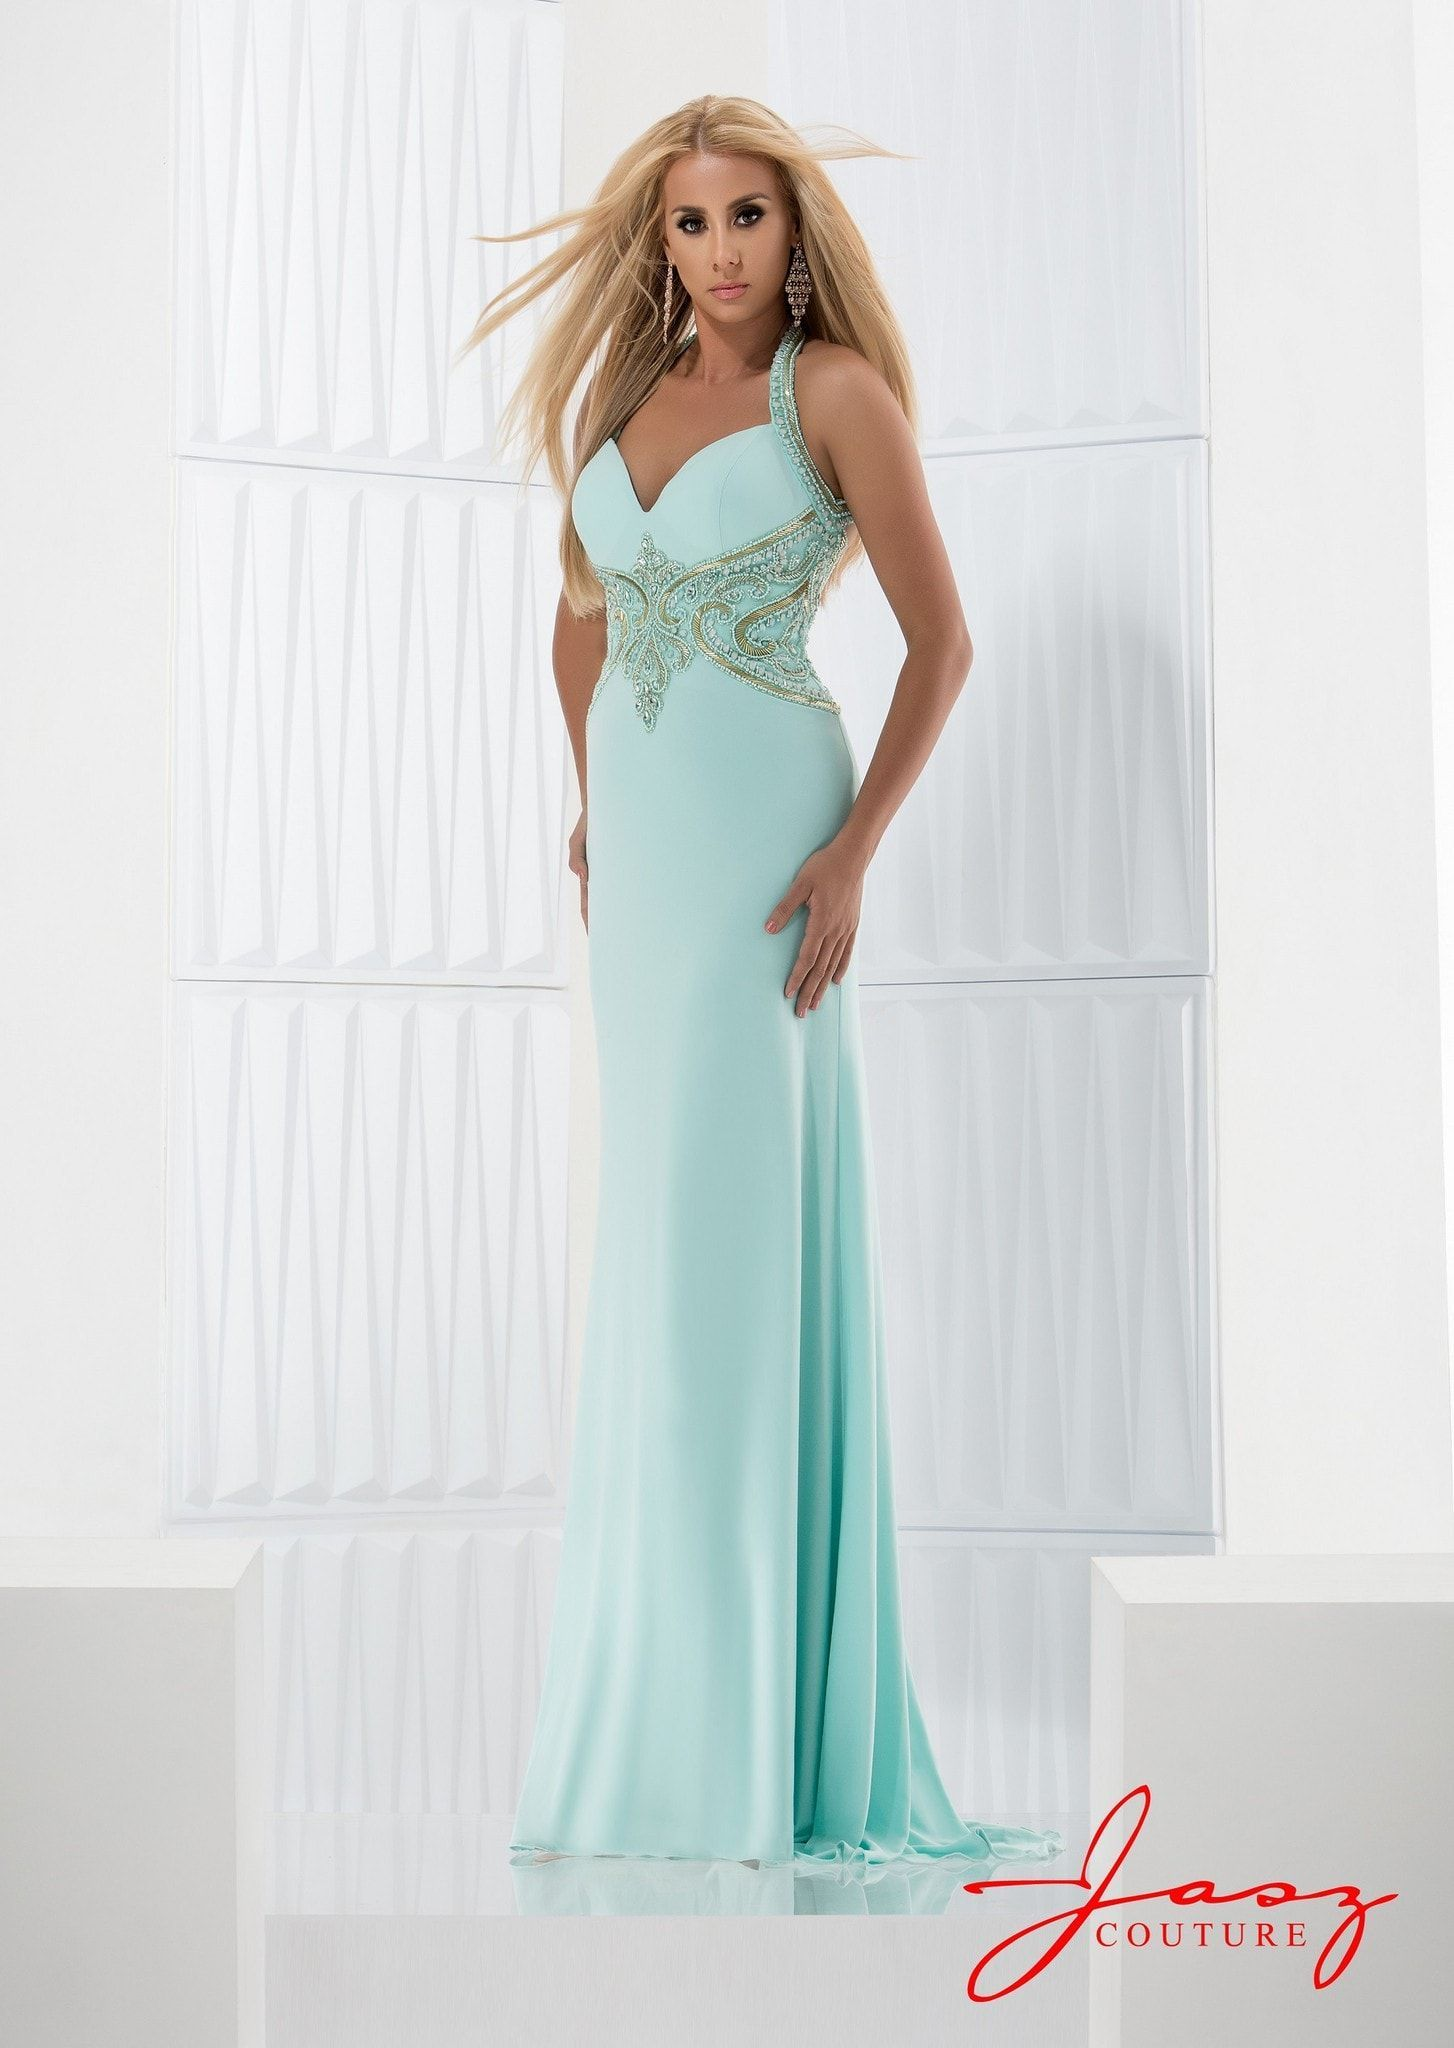 Jasz Couture 5809 Aqua | #Gefällt mir...Evening Dresses Long ...